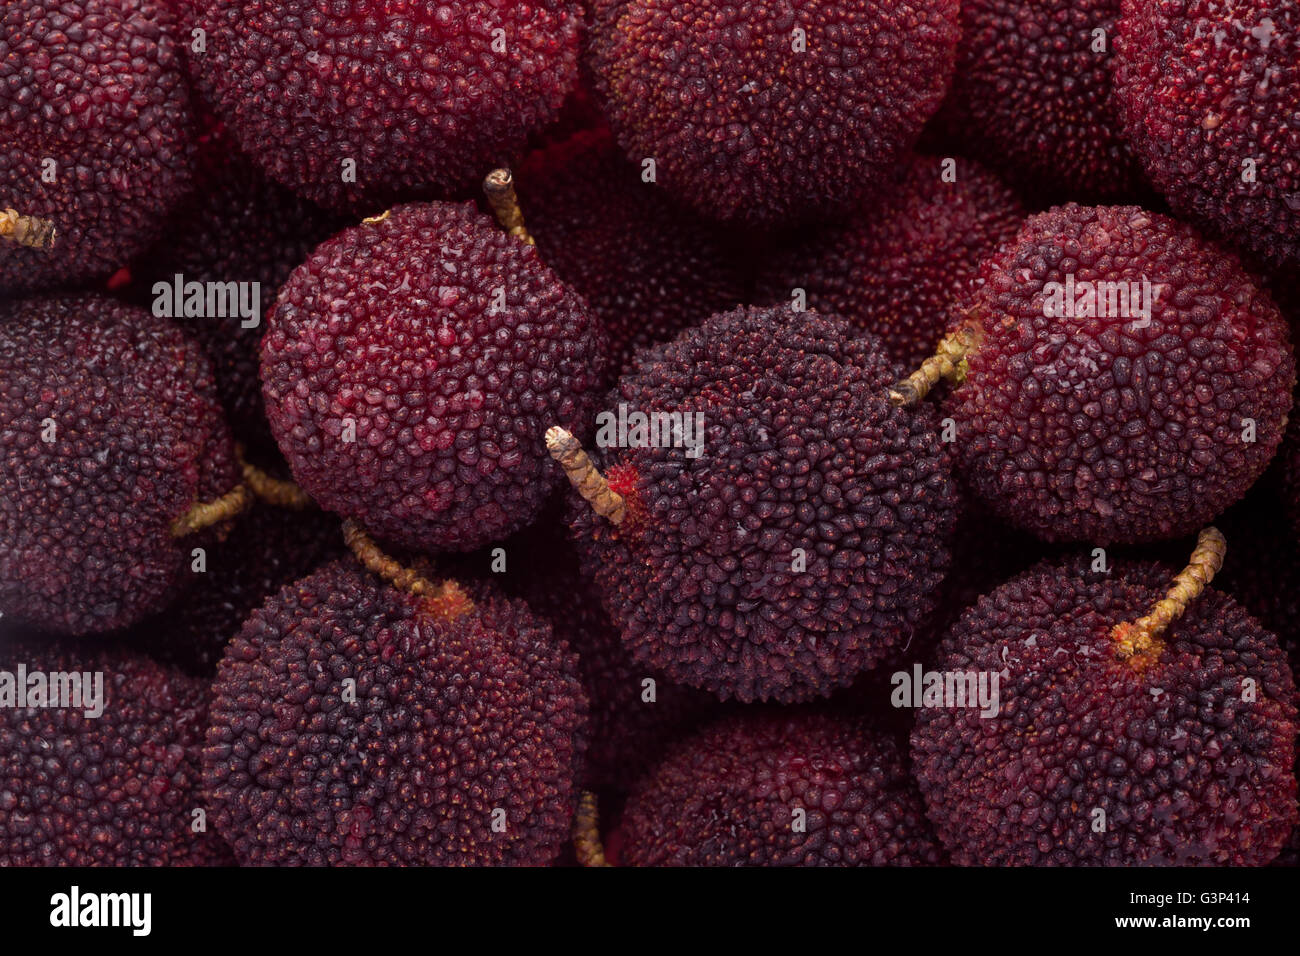 Yumberries in a square bowl isolated on white background - Stock Image